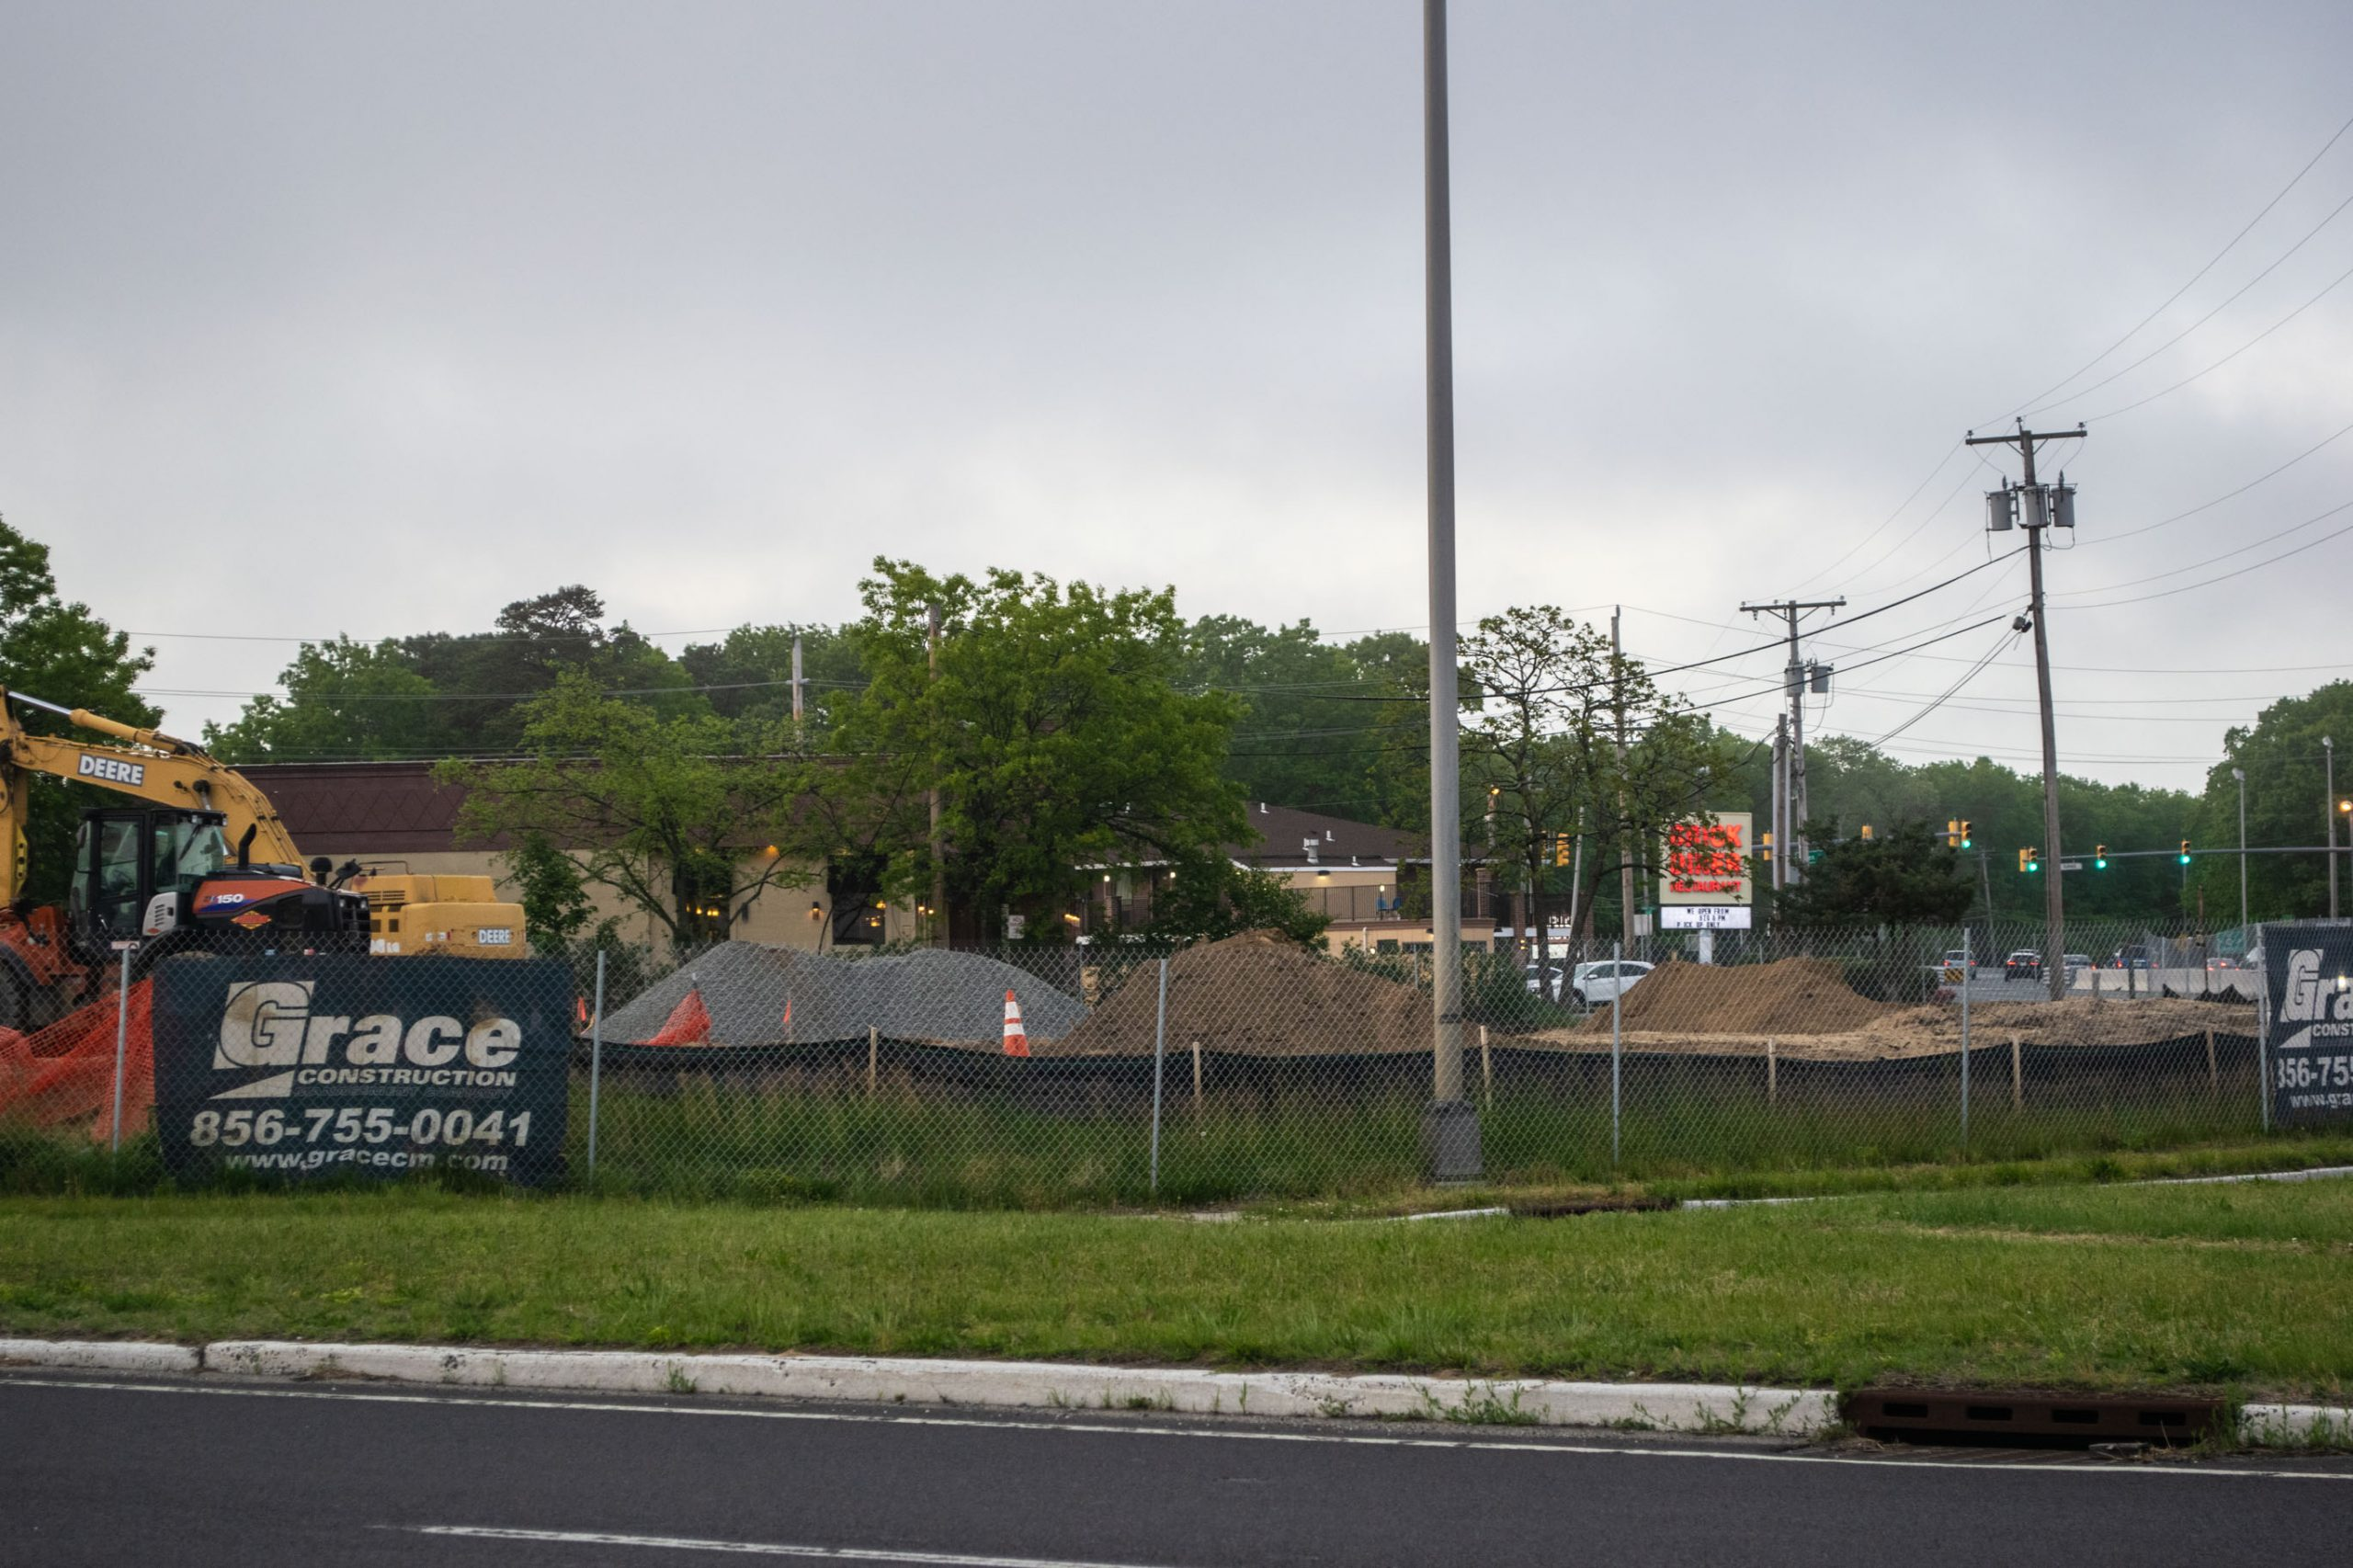 The site of the former Jersey Paddler store in Brick, May 2020. (Photo: Daniel Nee)